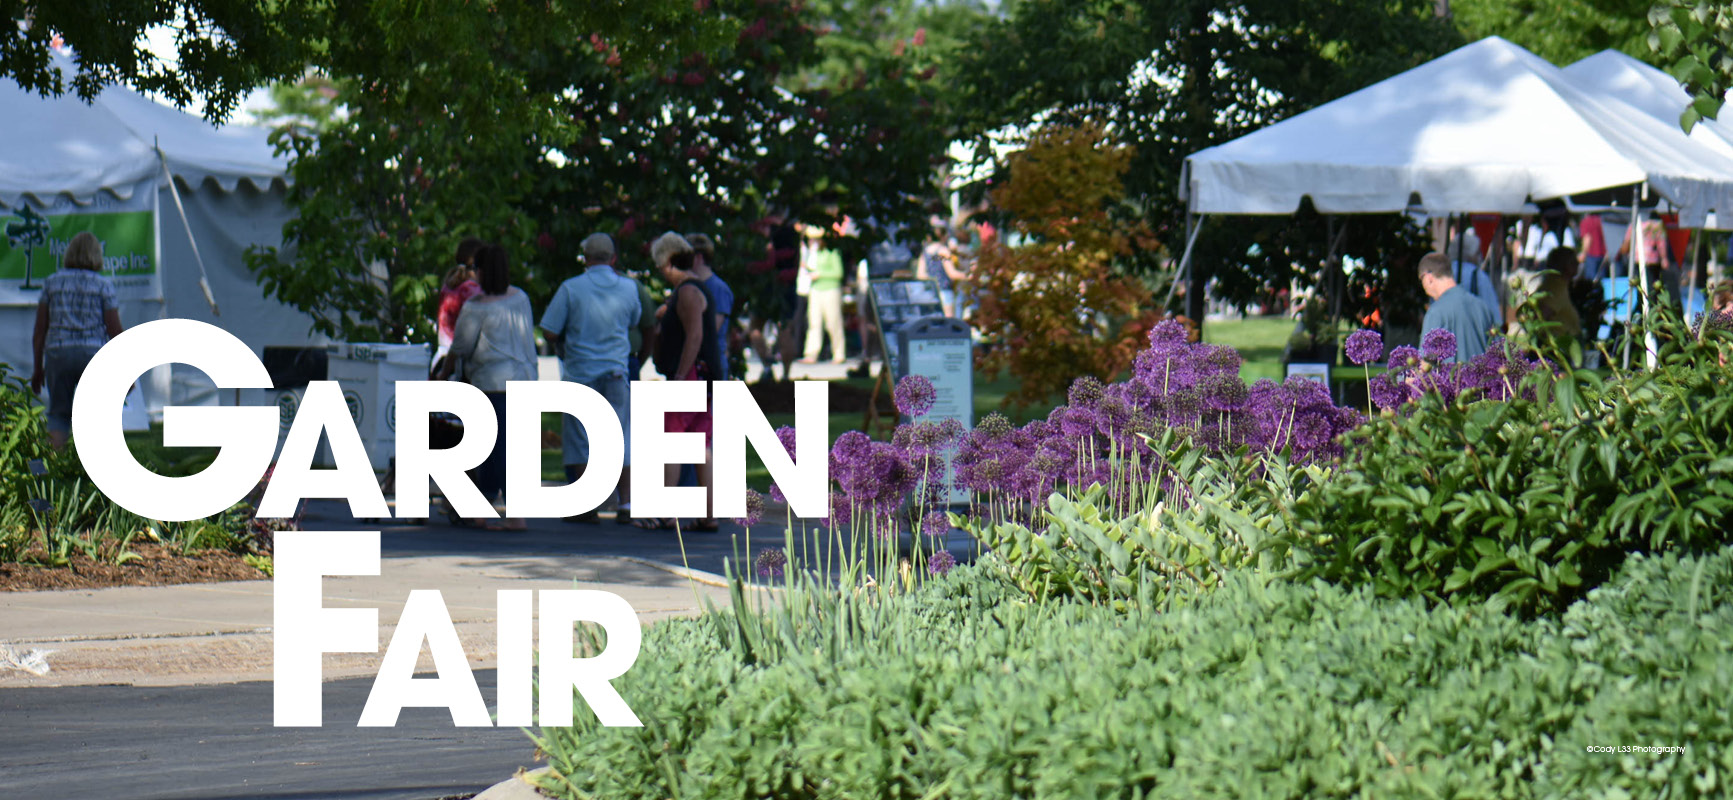 garden fair header image